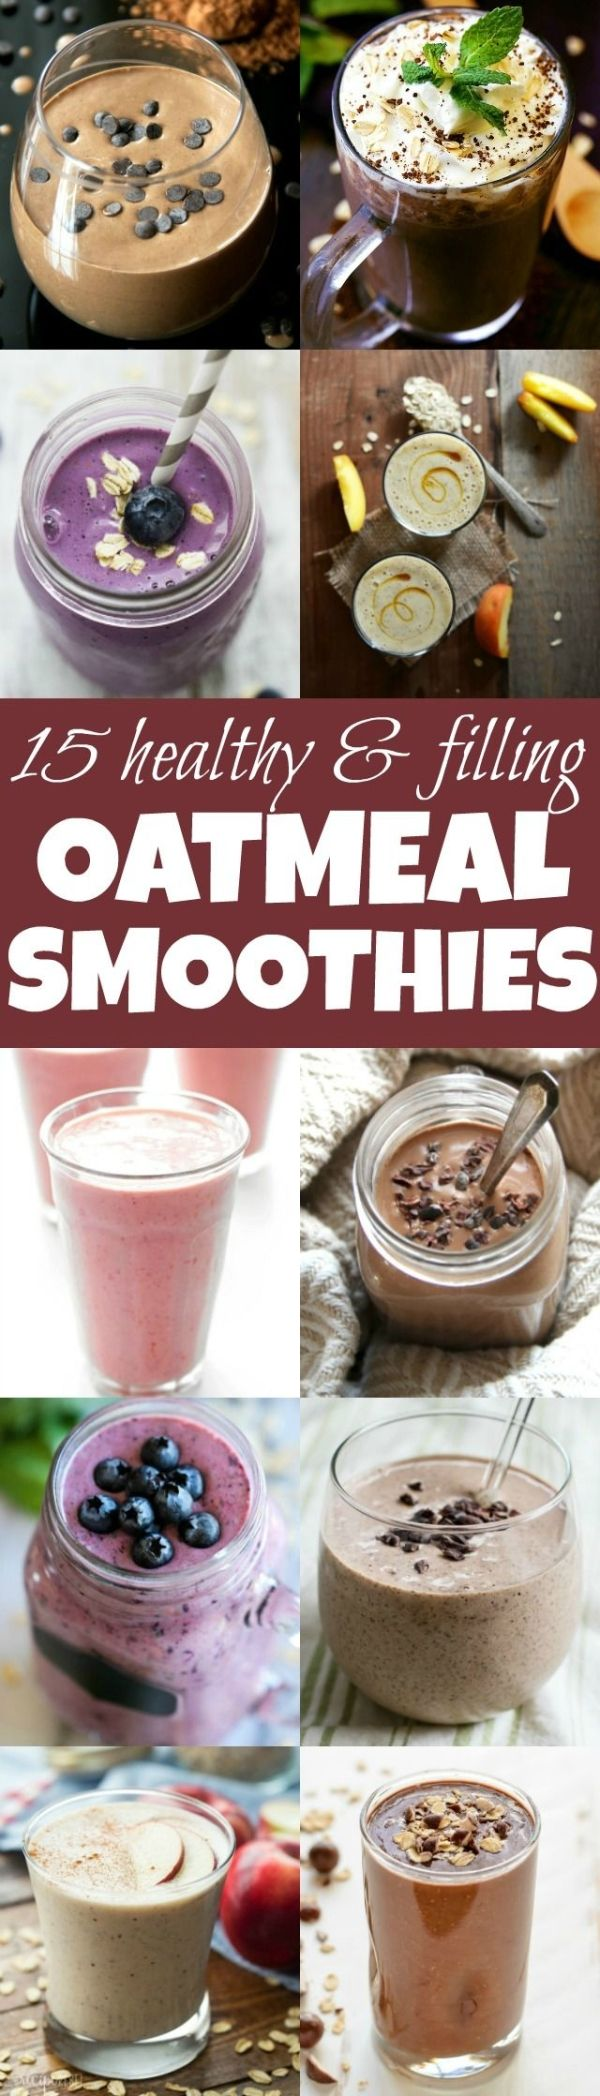 Add some extra staying power and nutrition to your smoothies with these healthy oatmeal smoothie recipes! by gena